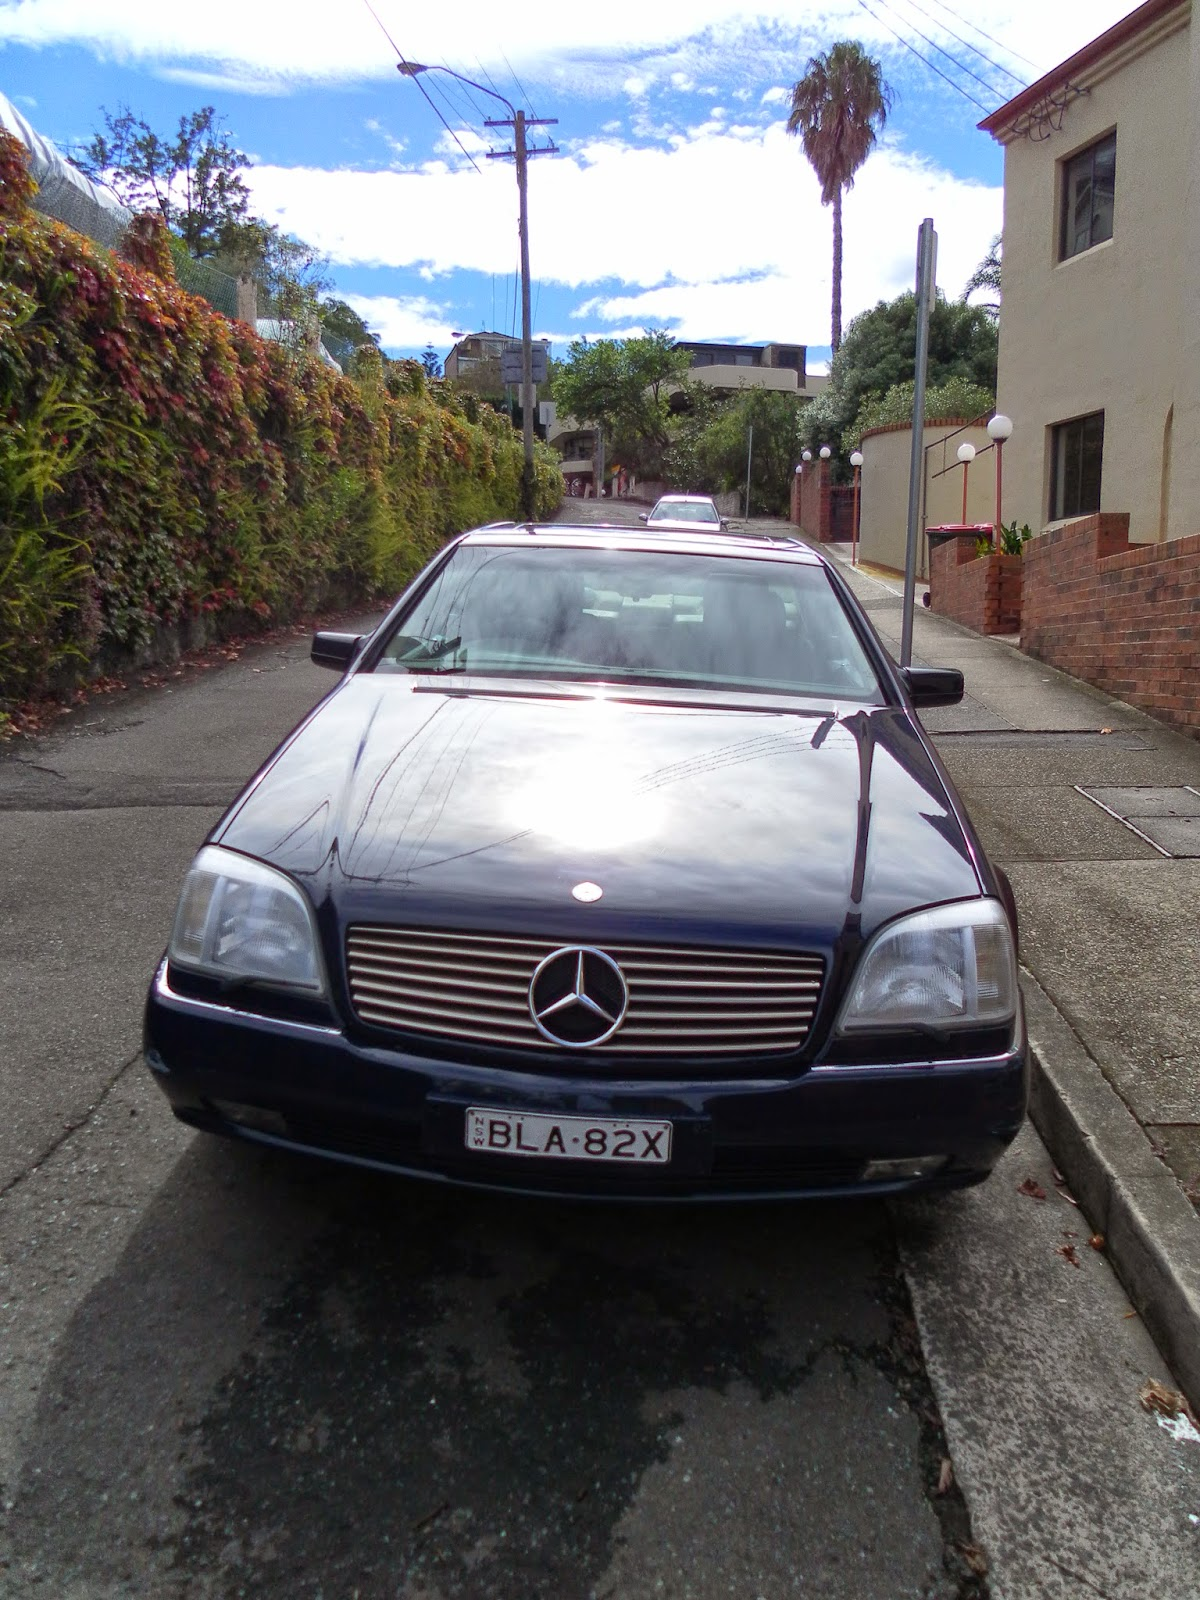 aussie old parked cars 1996 mercedes benz c140 s 500 coupe. Black Bedroom Furniture Sets. Home Design Ideas